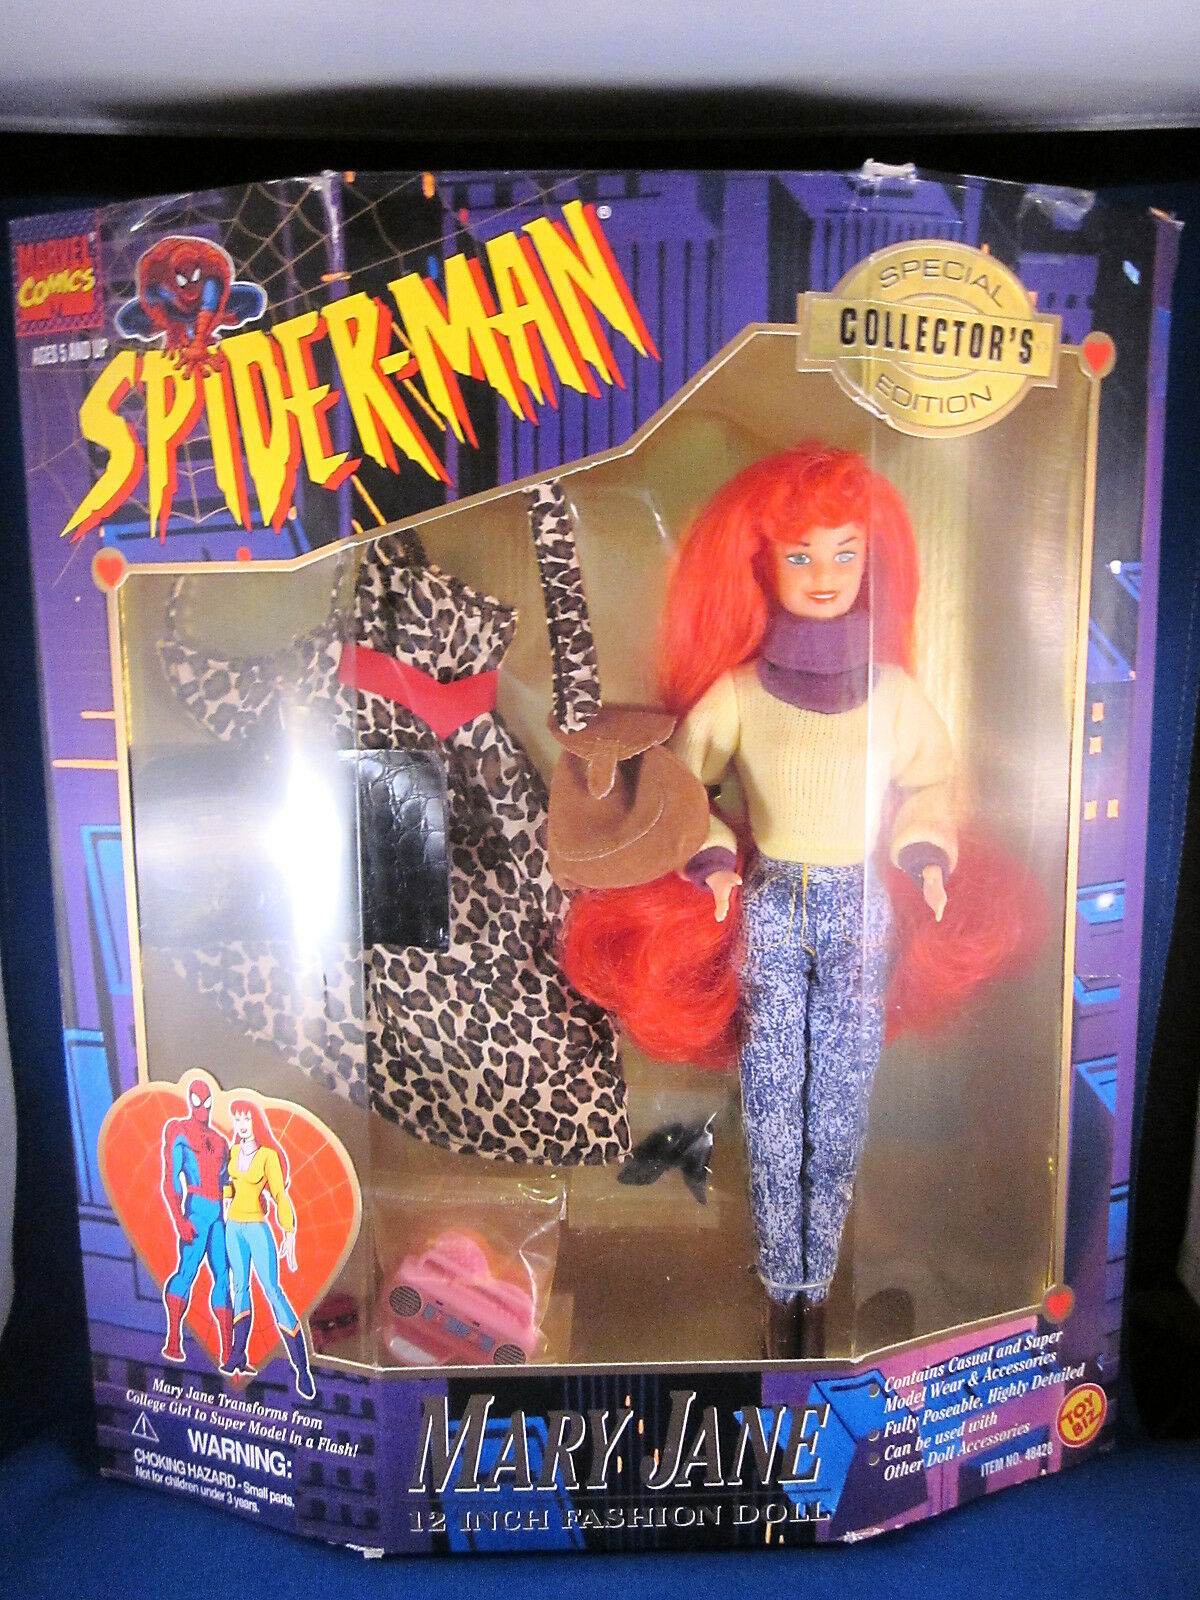 Toy Biz Spider-Man 12 Inch Fashion Doll Mary Jane Special Collector's Edition